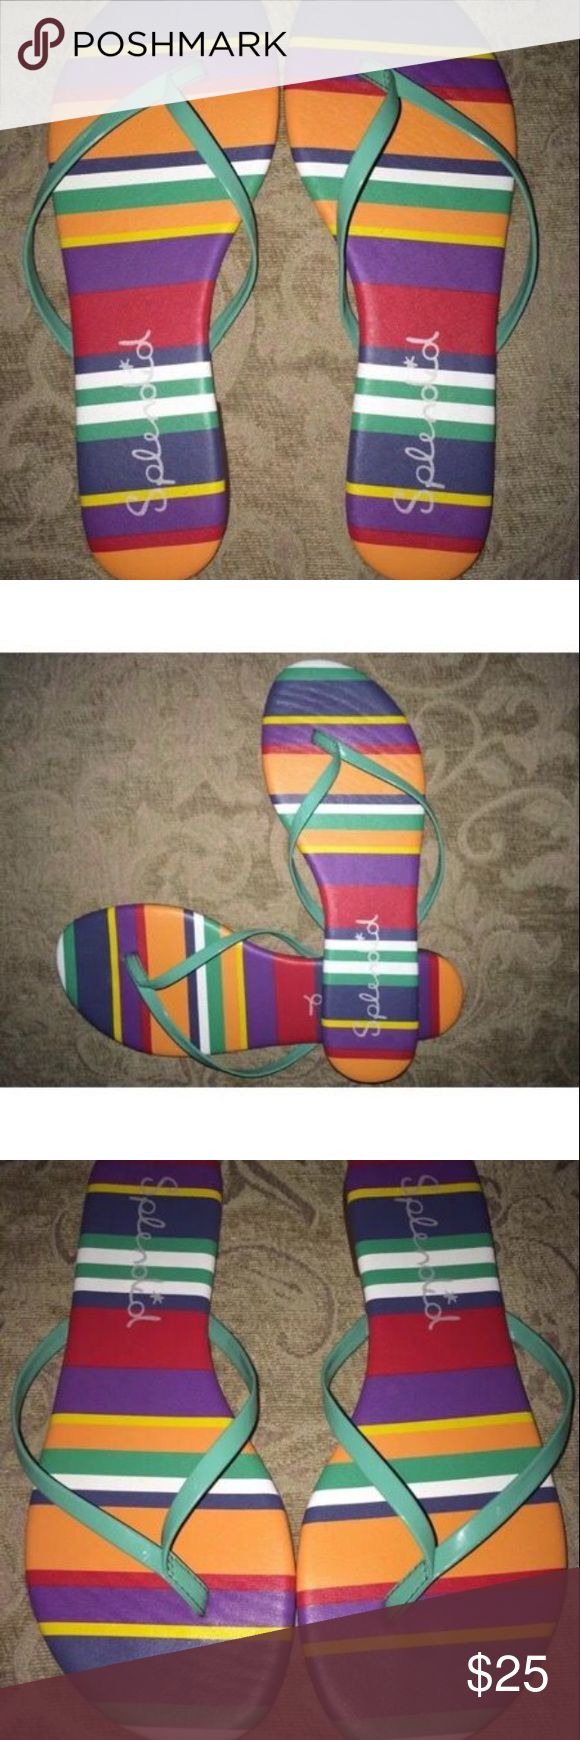 Splendid Multicolor Madrid Thong Flip Flops These Splendid flip flops have a thin padded footbed.  They are a size 7 and in great condition.  I'm selling these for one of my daughters so no trades please.  Great everyday flip flops.  I believe retail was $49.99 for these. Splendid Shoes Sandals